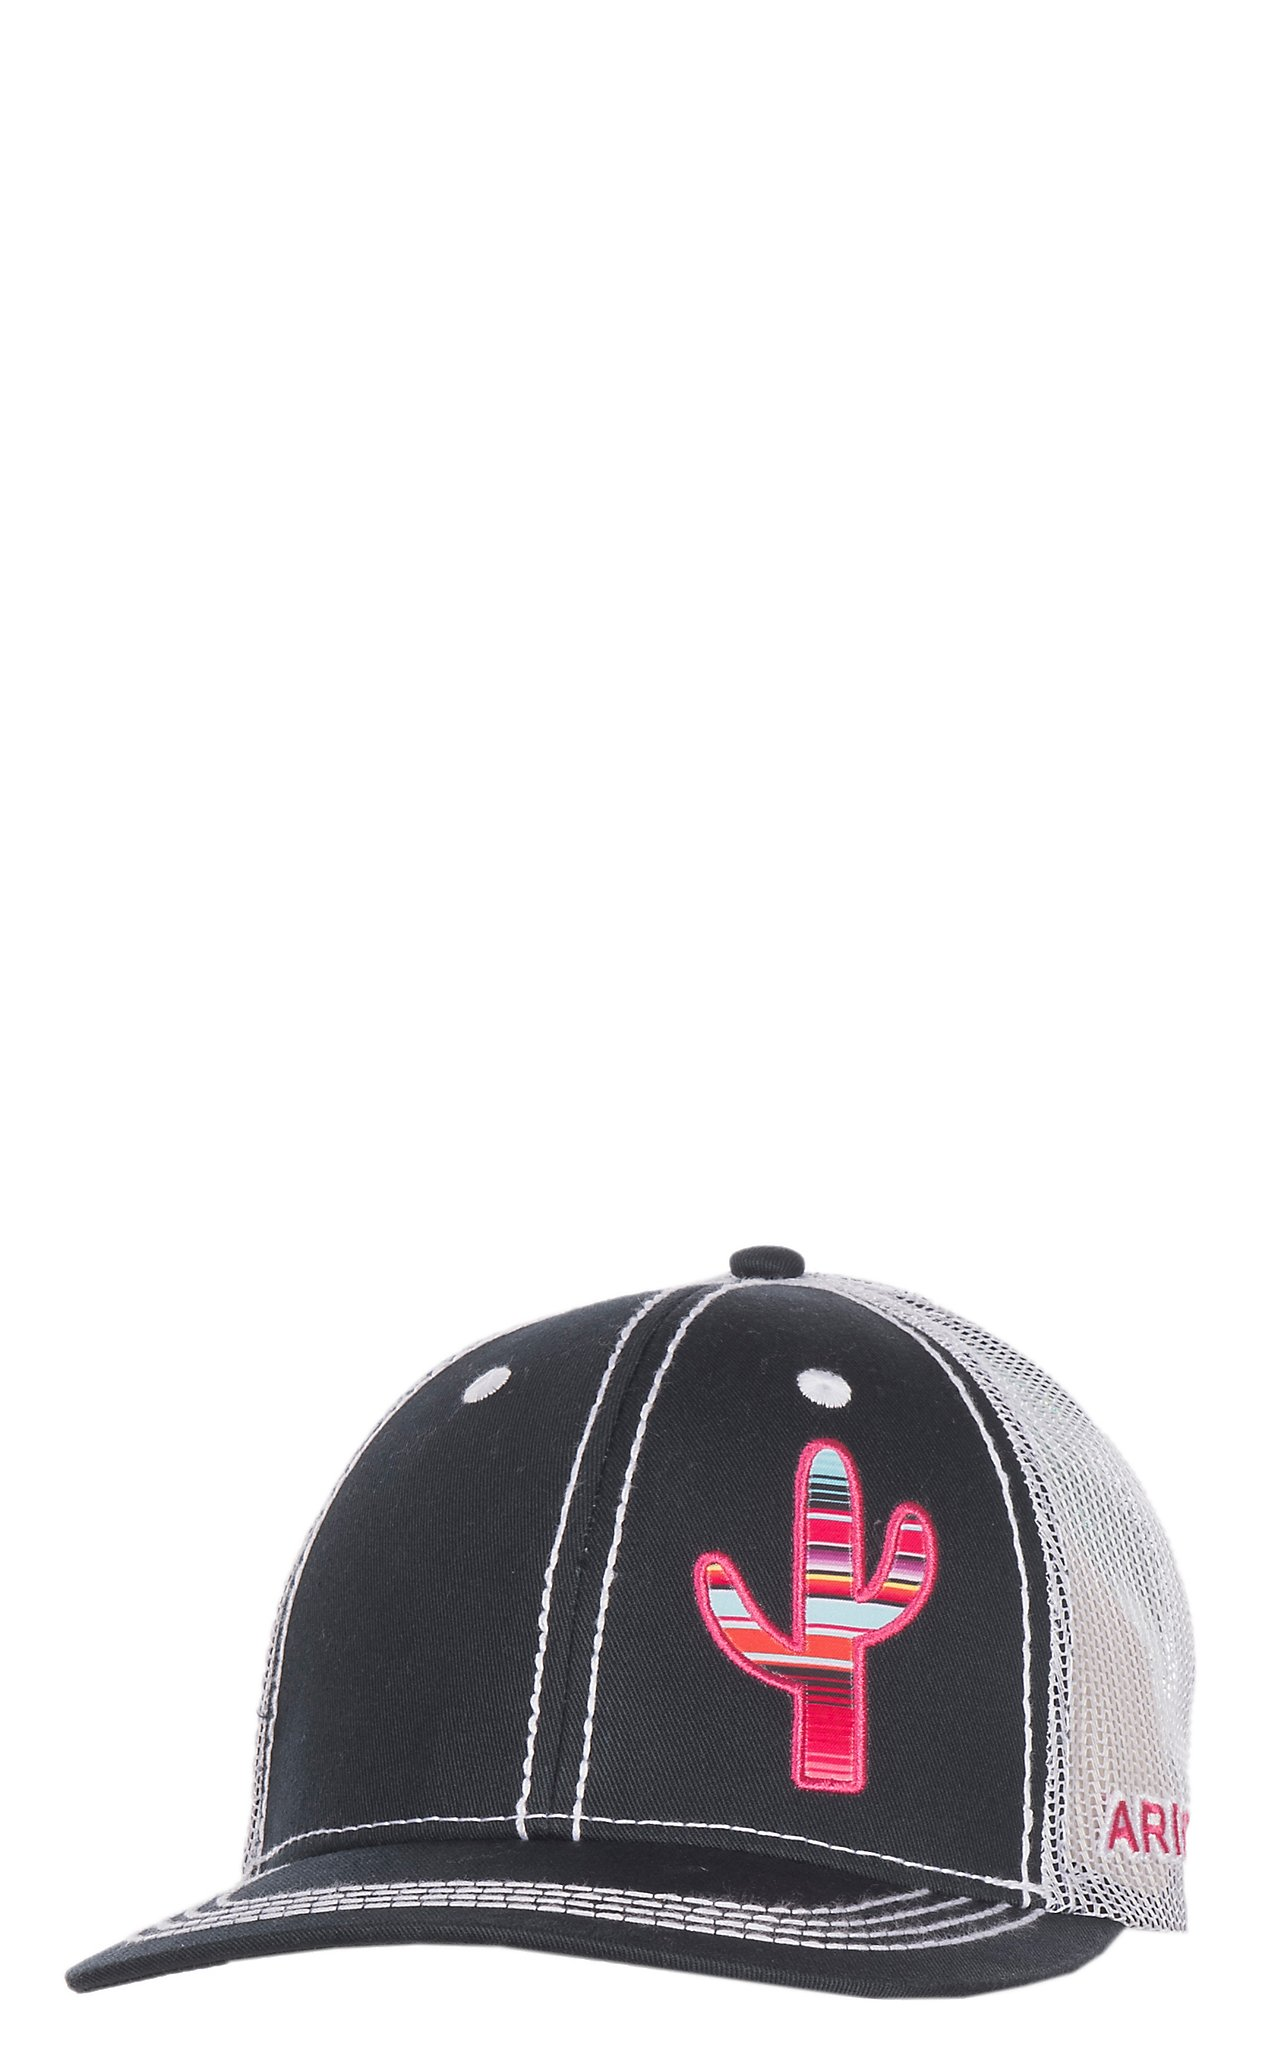 Ariat Women s Black with Pink Serape Cactus Hat  a5af7e97b3e